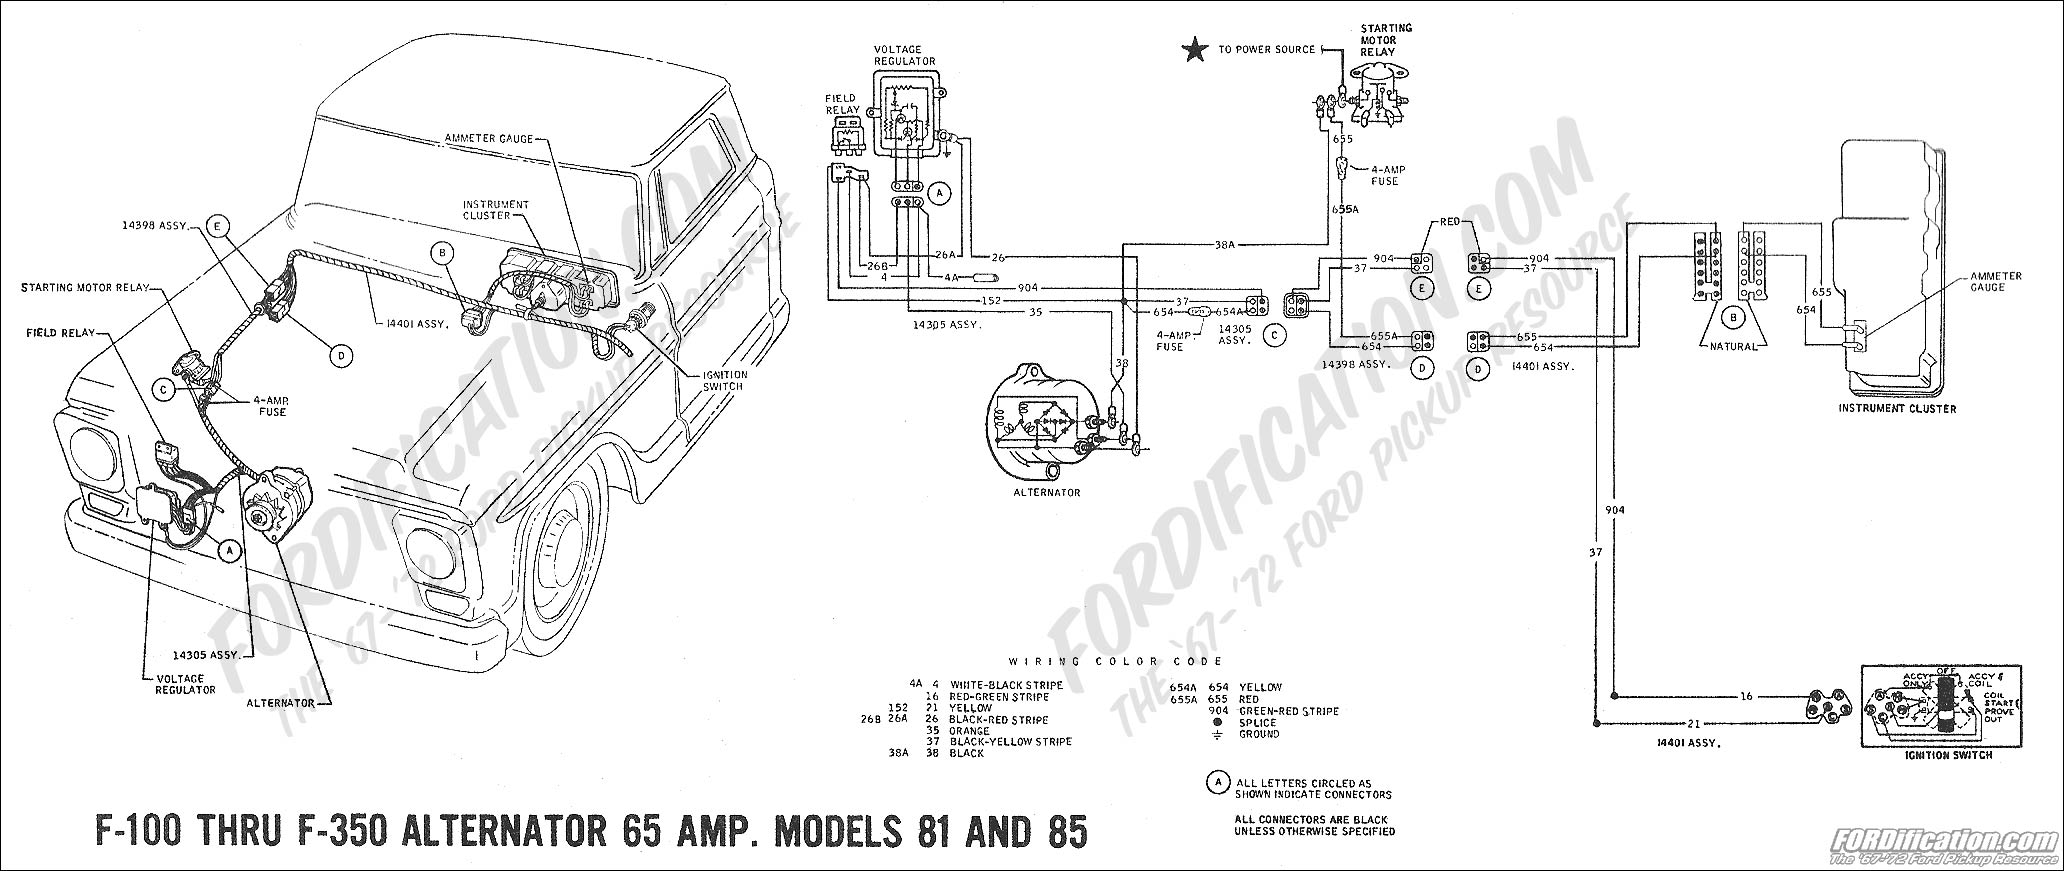 Ford Truck Technical Drawings And Schematics Section H Wiring 72 Dodge Ignition Switch 1969 F 100 Thru 350 Alternator 65 Amp Models 81 85